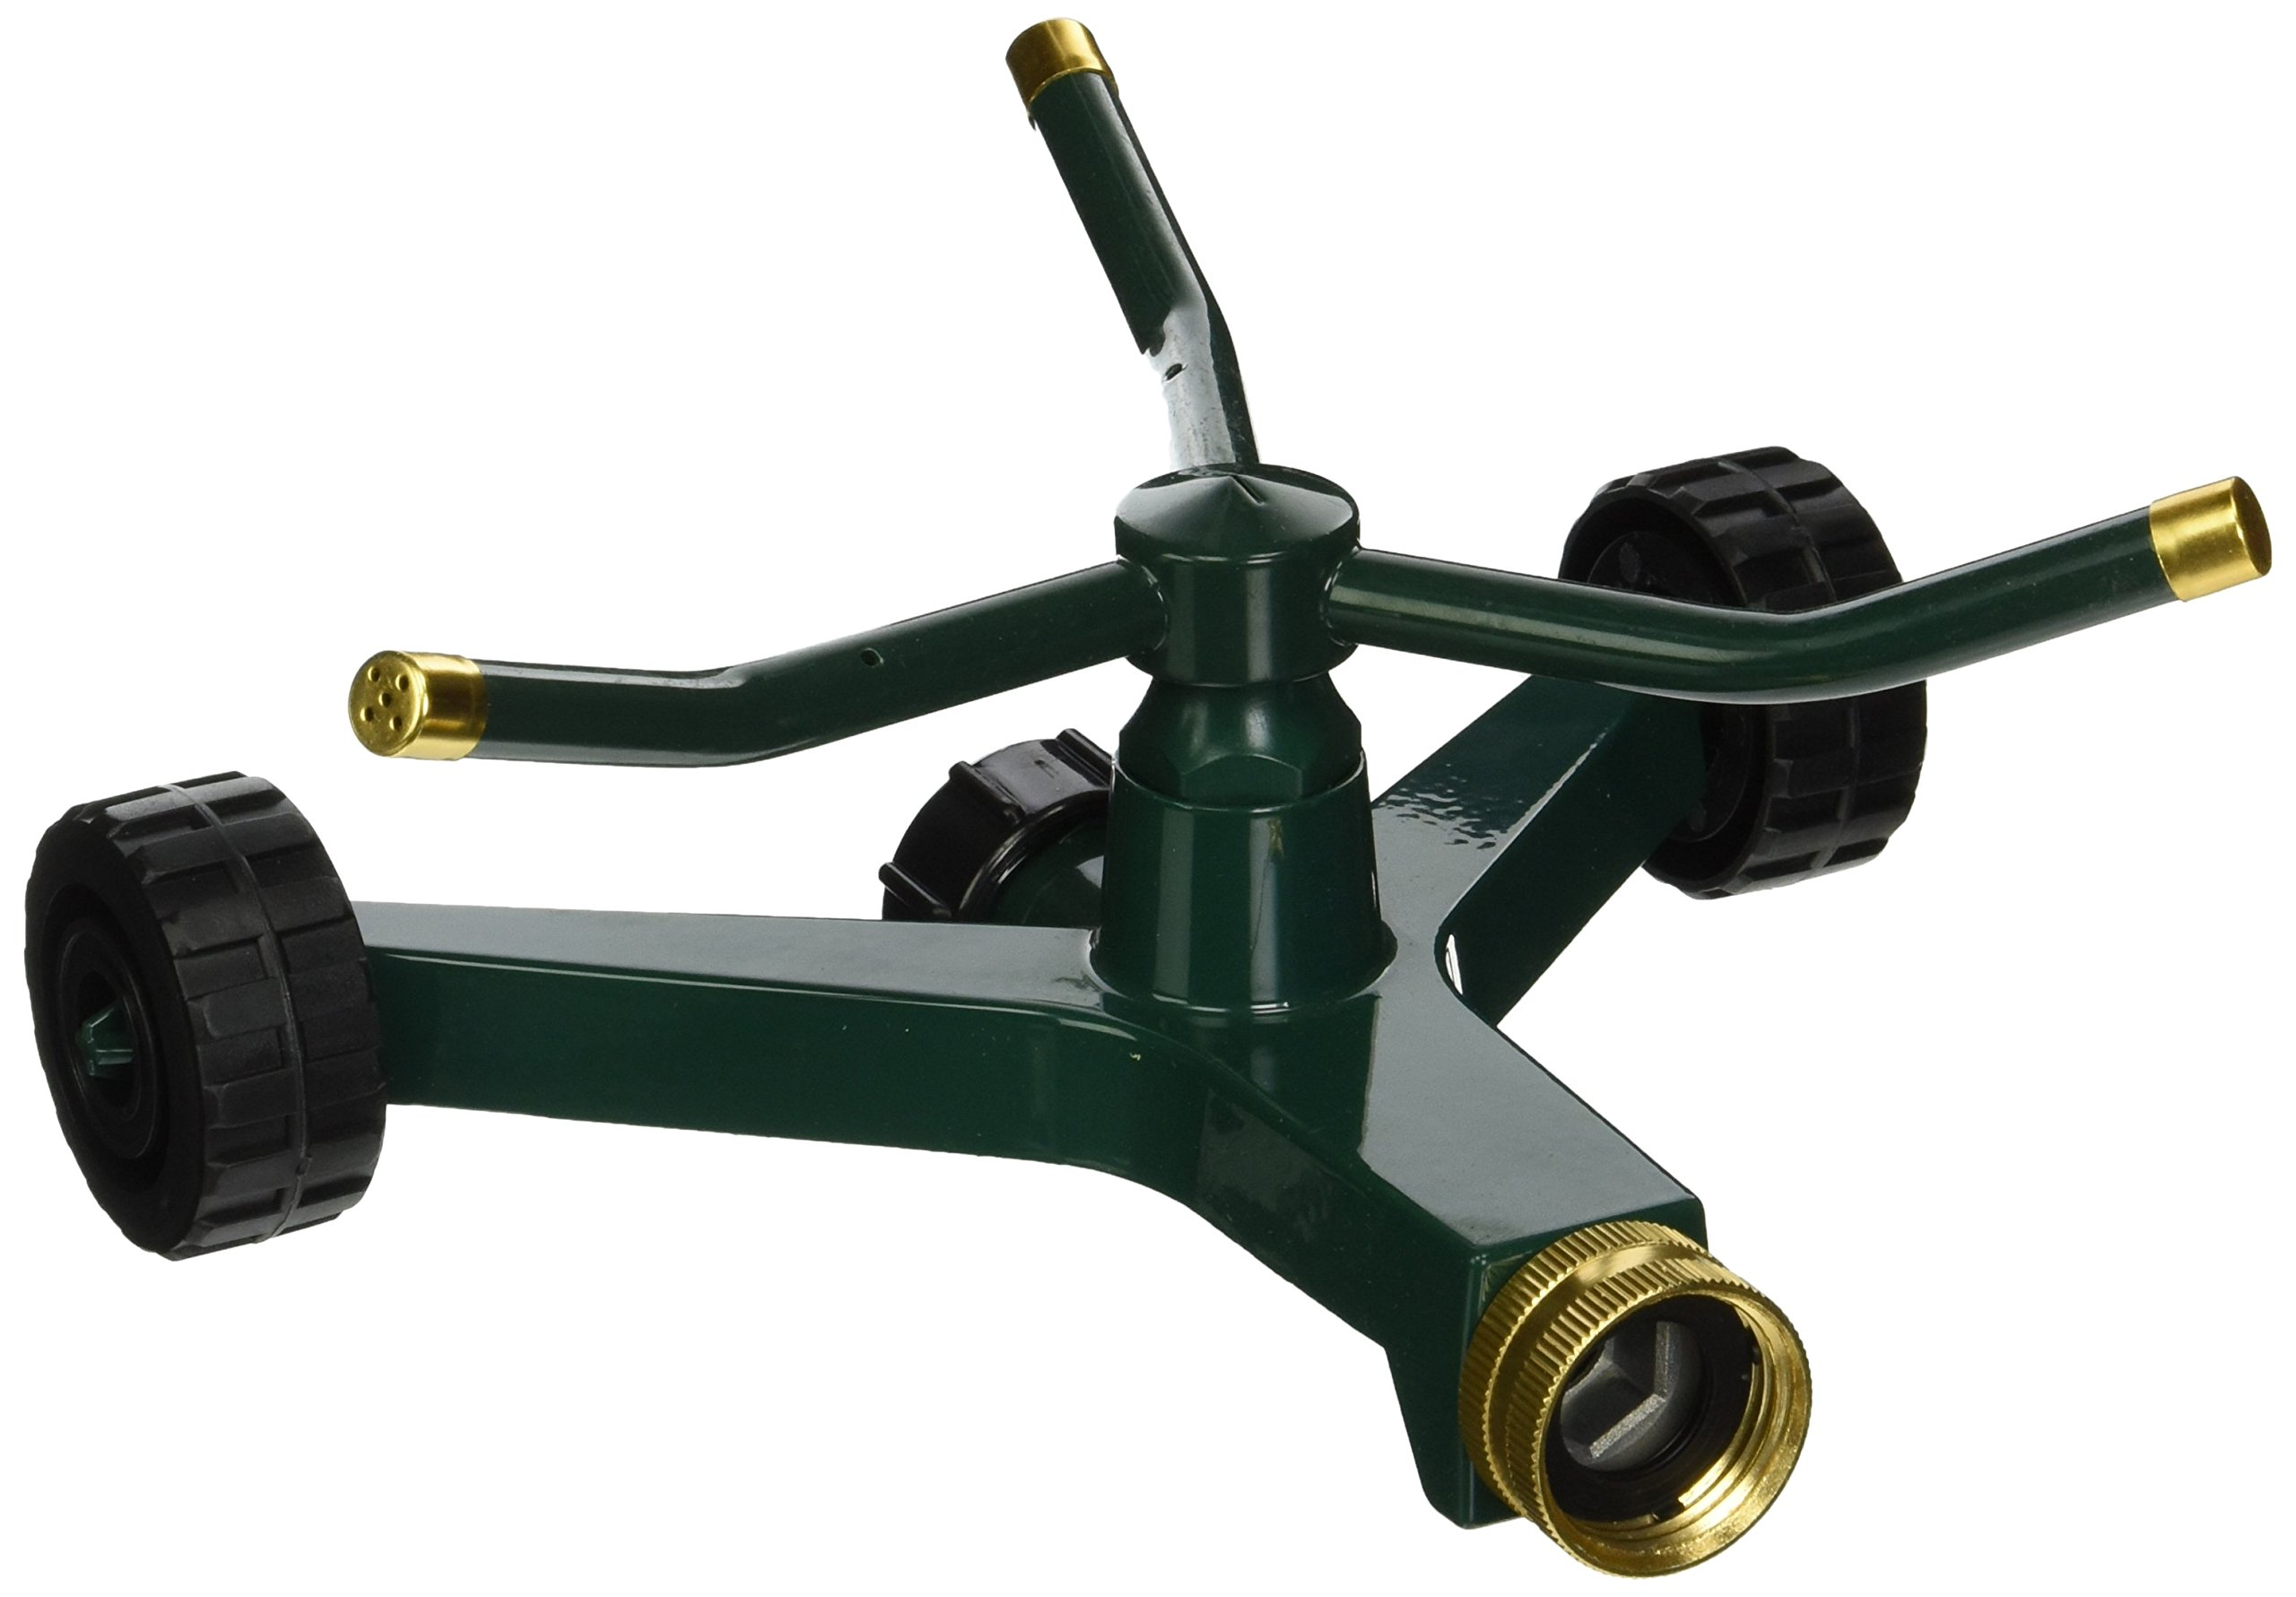 Orbit 58257N Metal 3-Arm Sprinkler with Wheeled Base